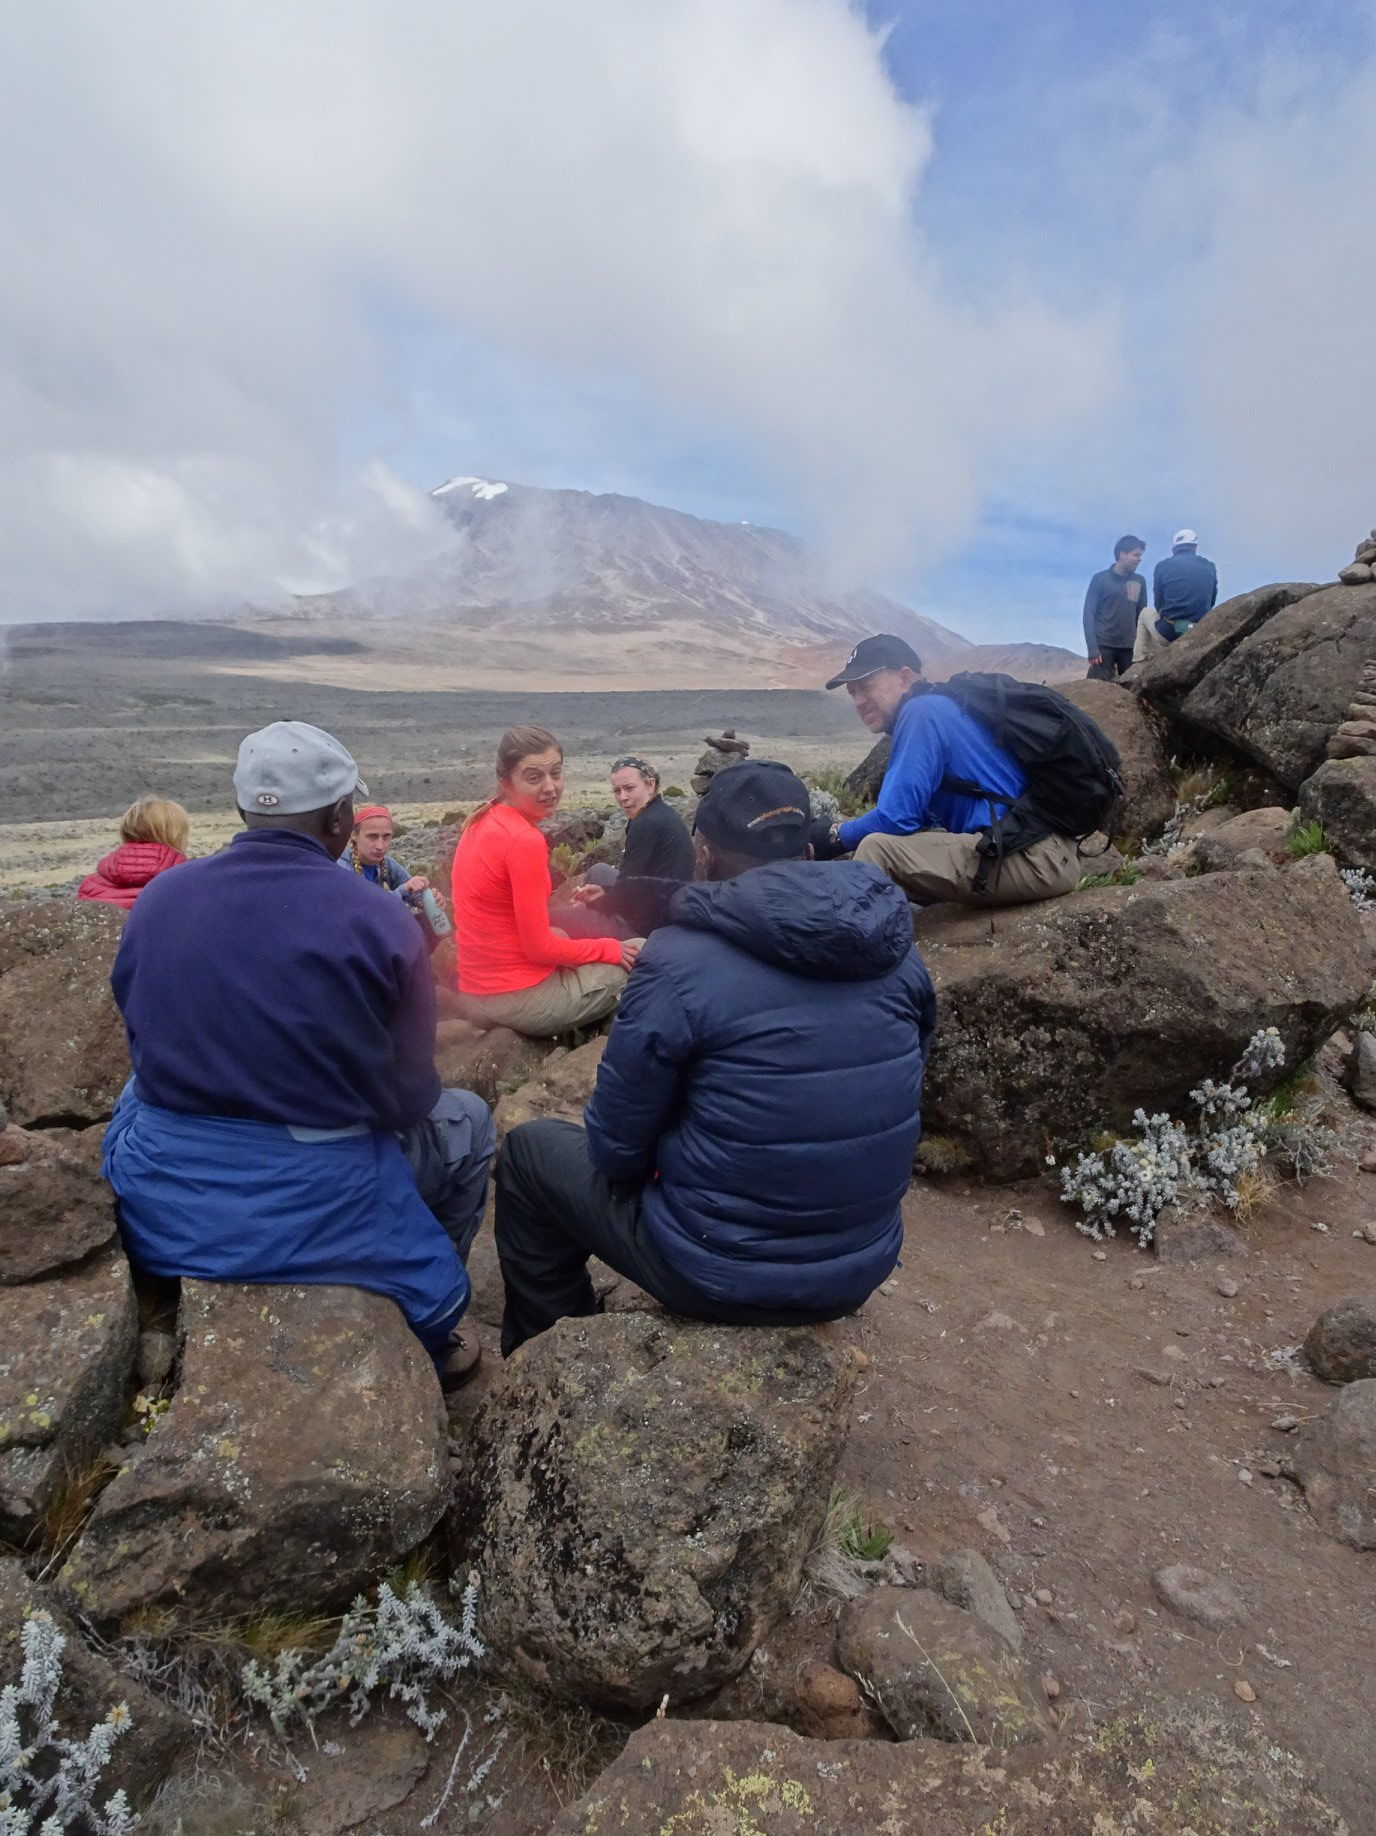 Day Two: Machame Gate (1,800 m/5,380 ft) – Machame Camp (2,980 m/9,780 ft)